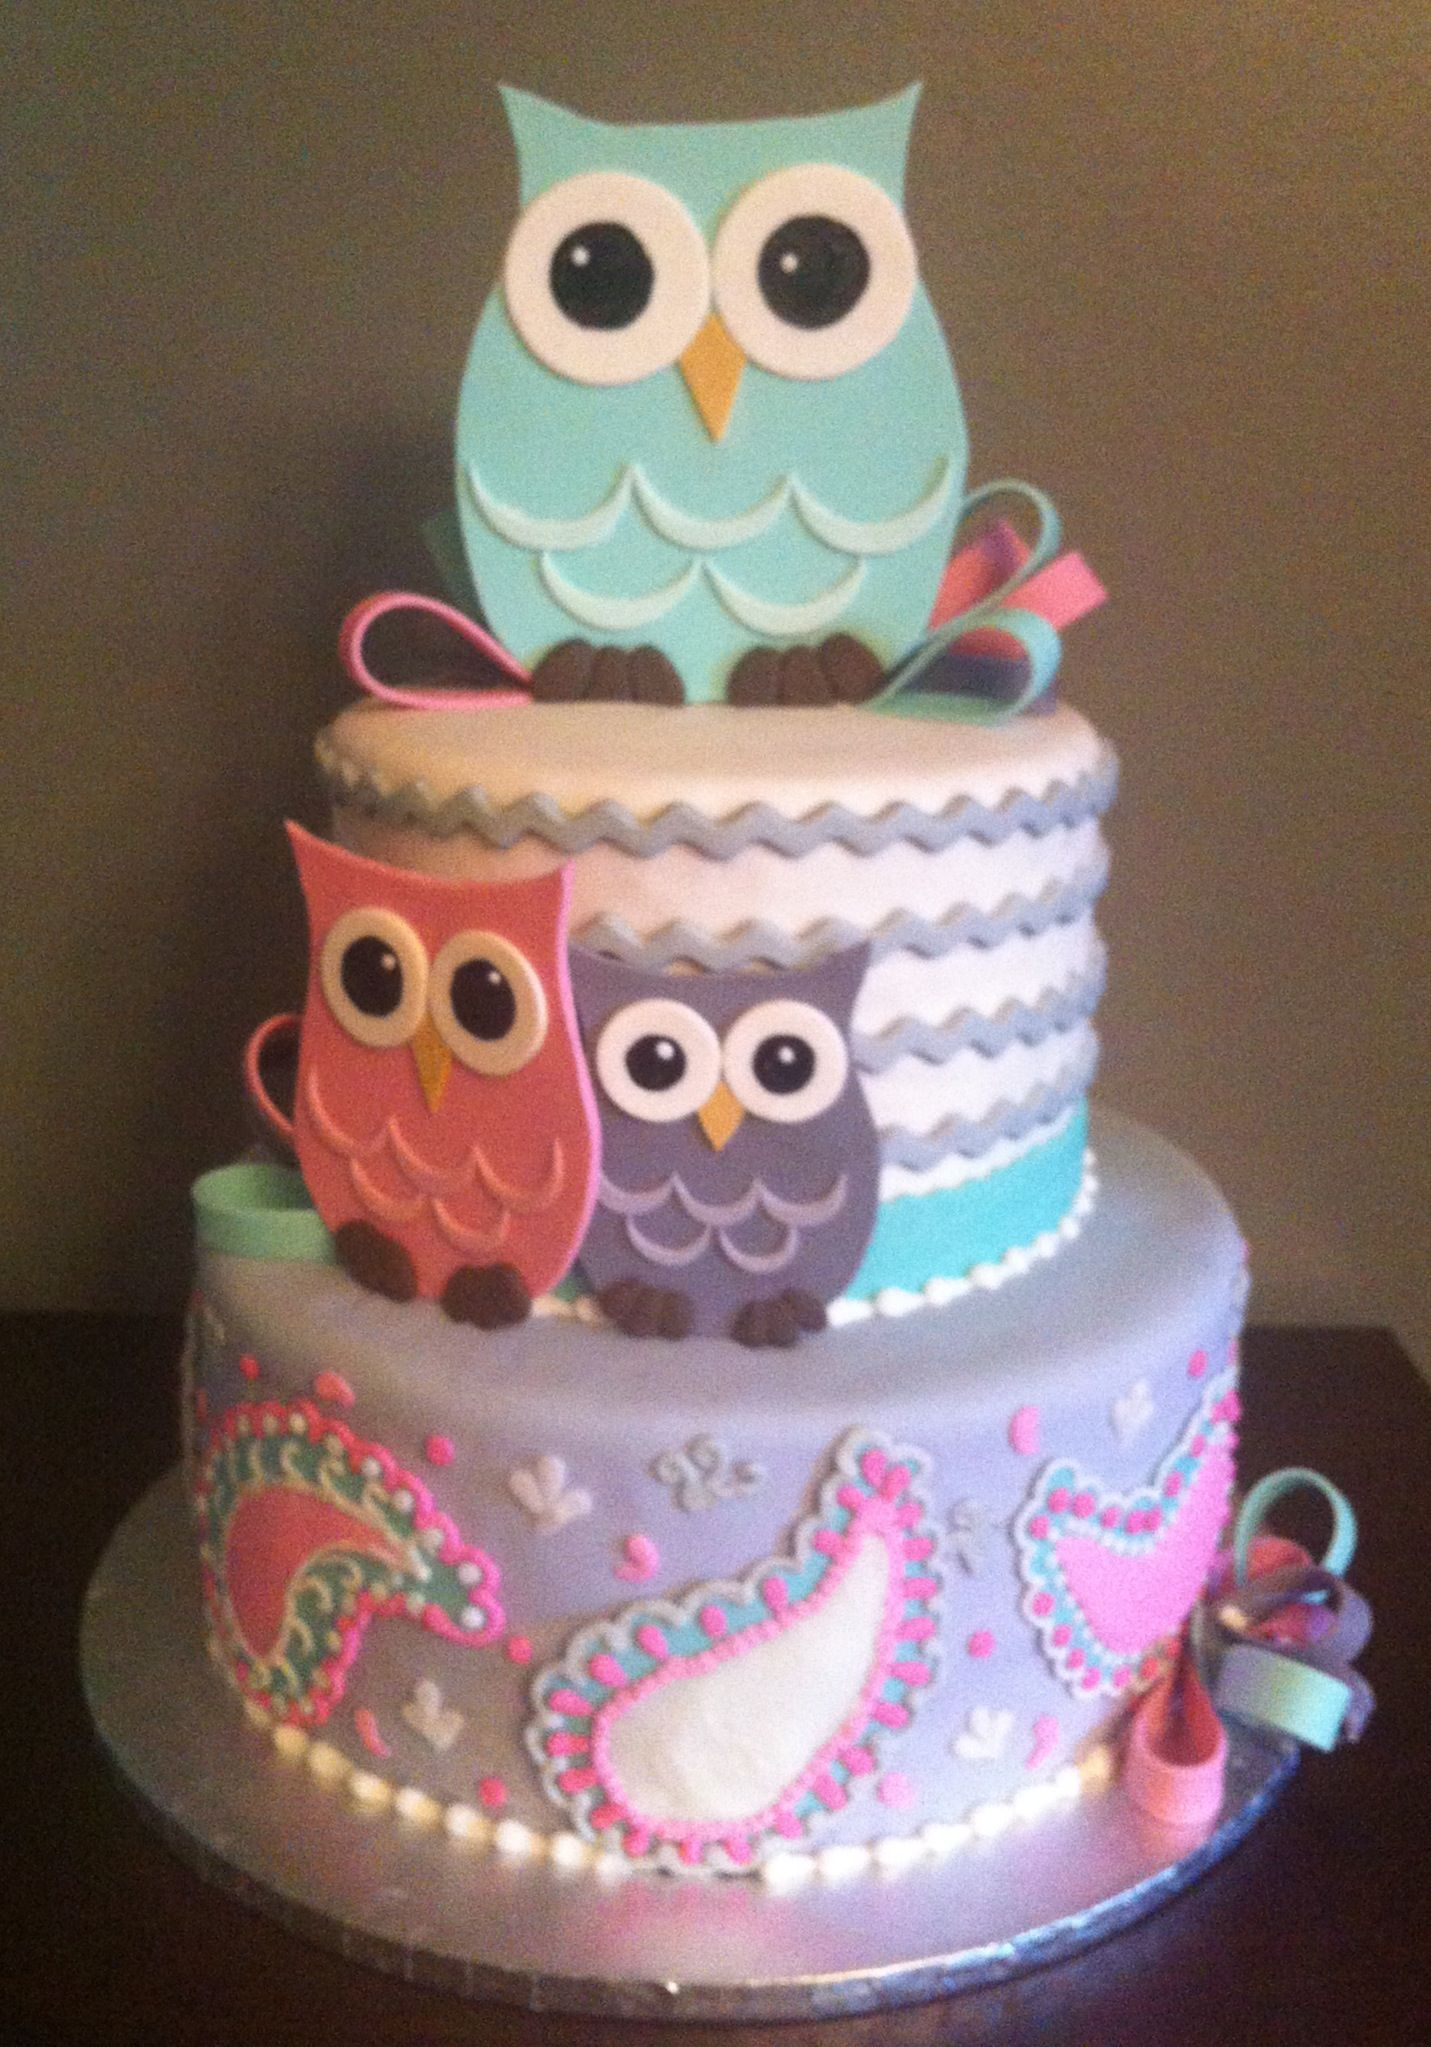 Owl Baby Shower Cake @Angie Wimberly Hammond @Kaylee Score Patrick PERFECT  CAKE